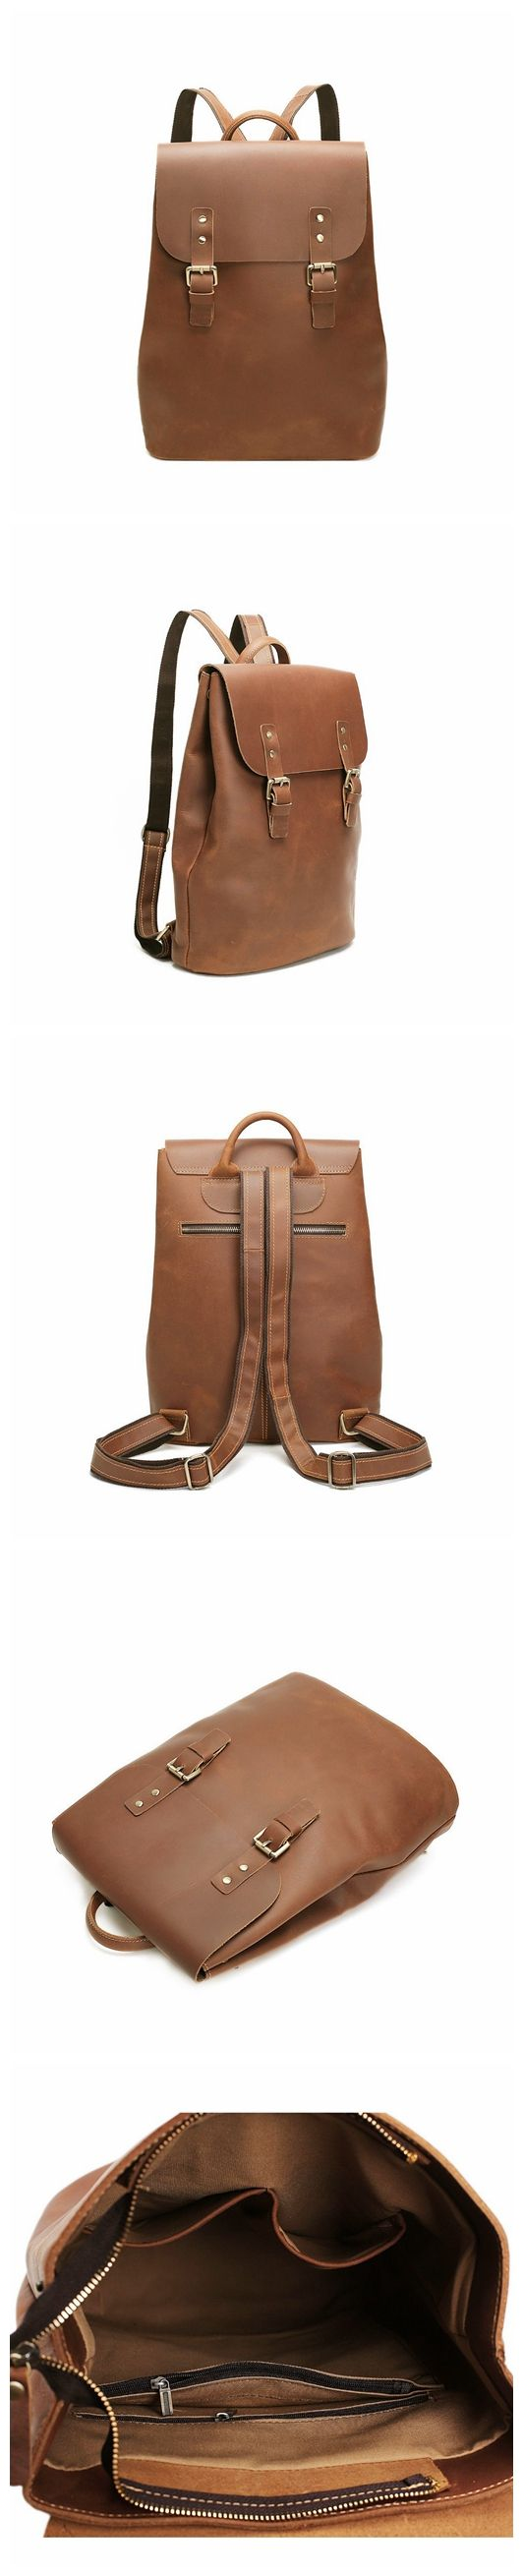 "ROCKCOW Vintage Style Crazy Horse Leather Backpack, Rucksack, Travel Backpack 8645 Model Number: 8645 Dimensions: 13""L x 5.1""W x 15.3""H / 33cm(L) x 13cm(W) x 39cm(H) Weight: 3.9lb / 1.8kg Hardware: Br"